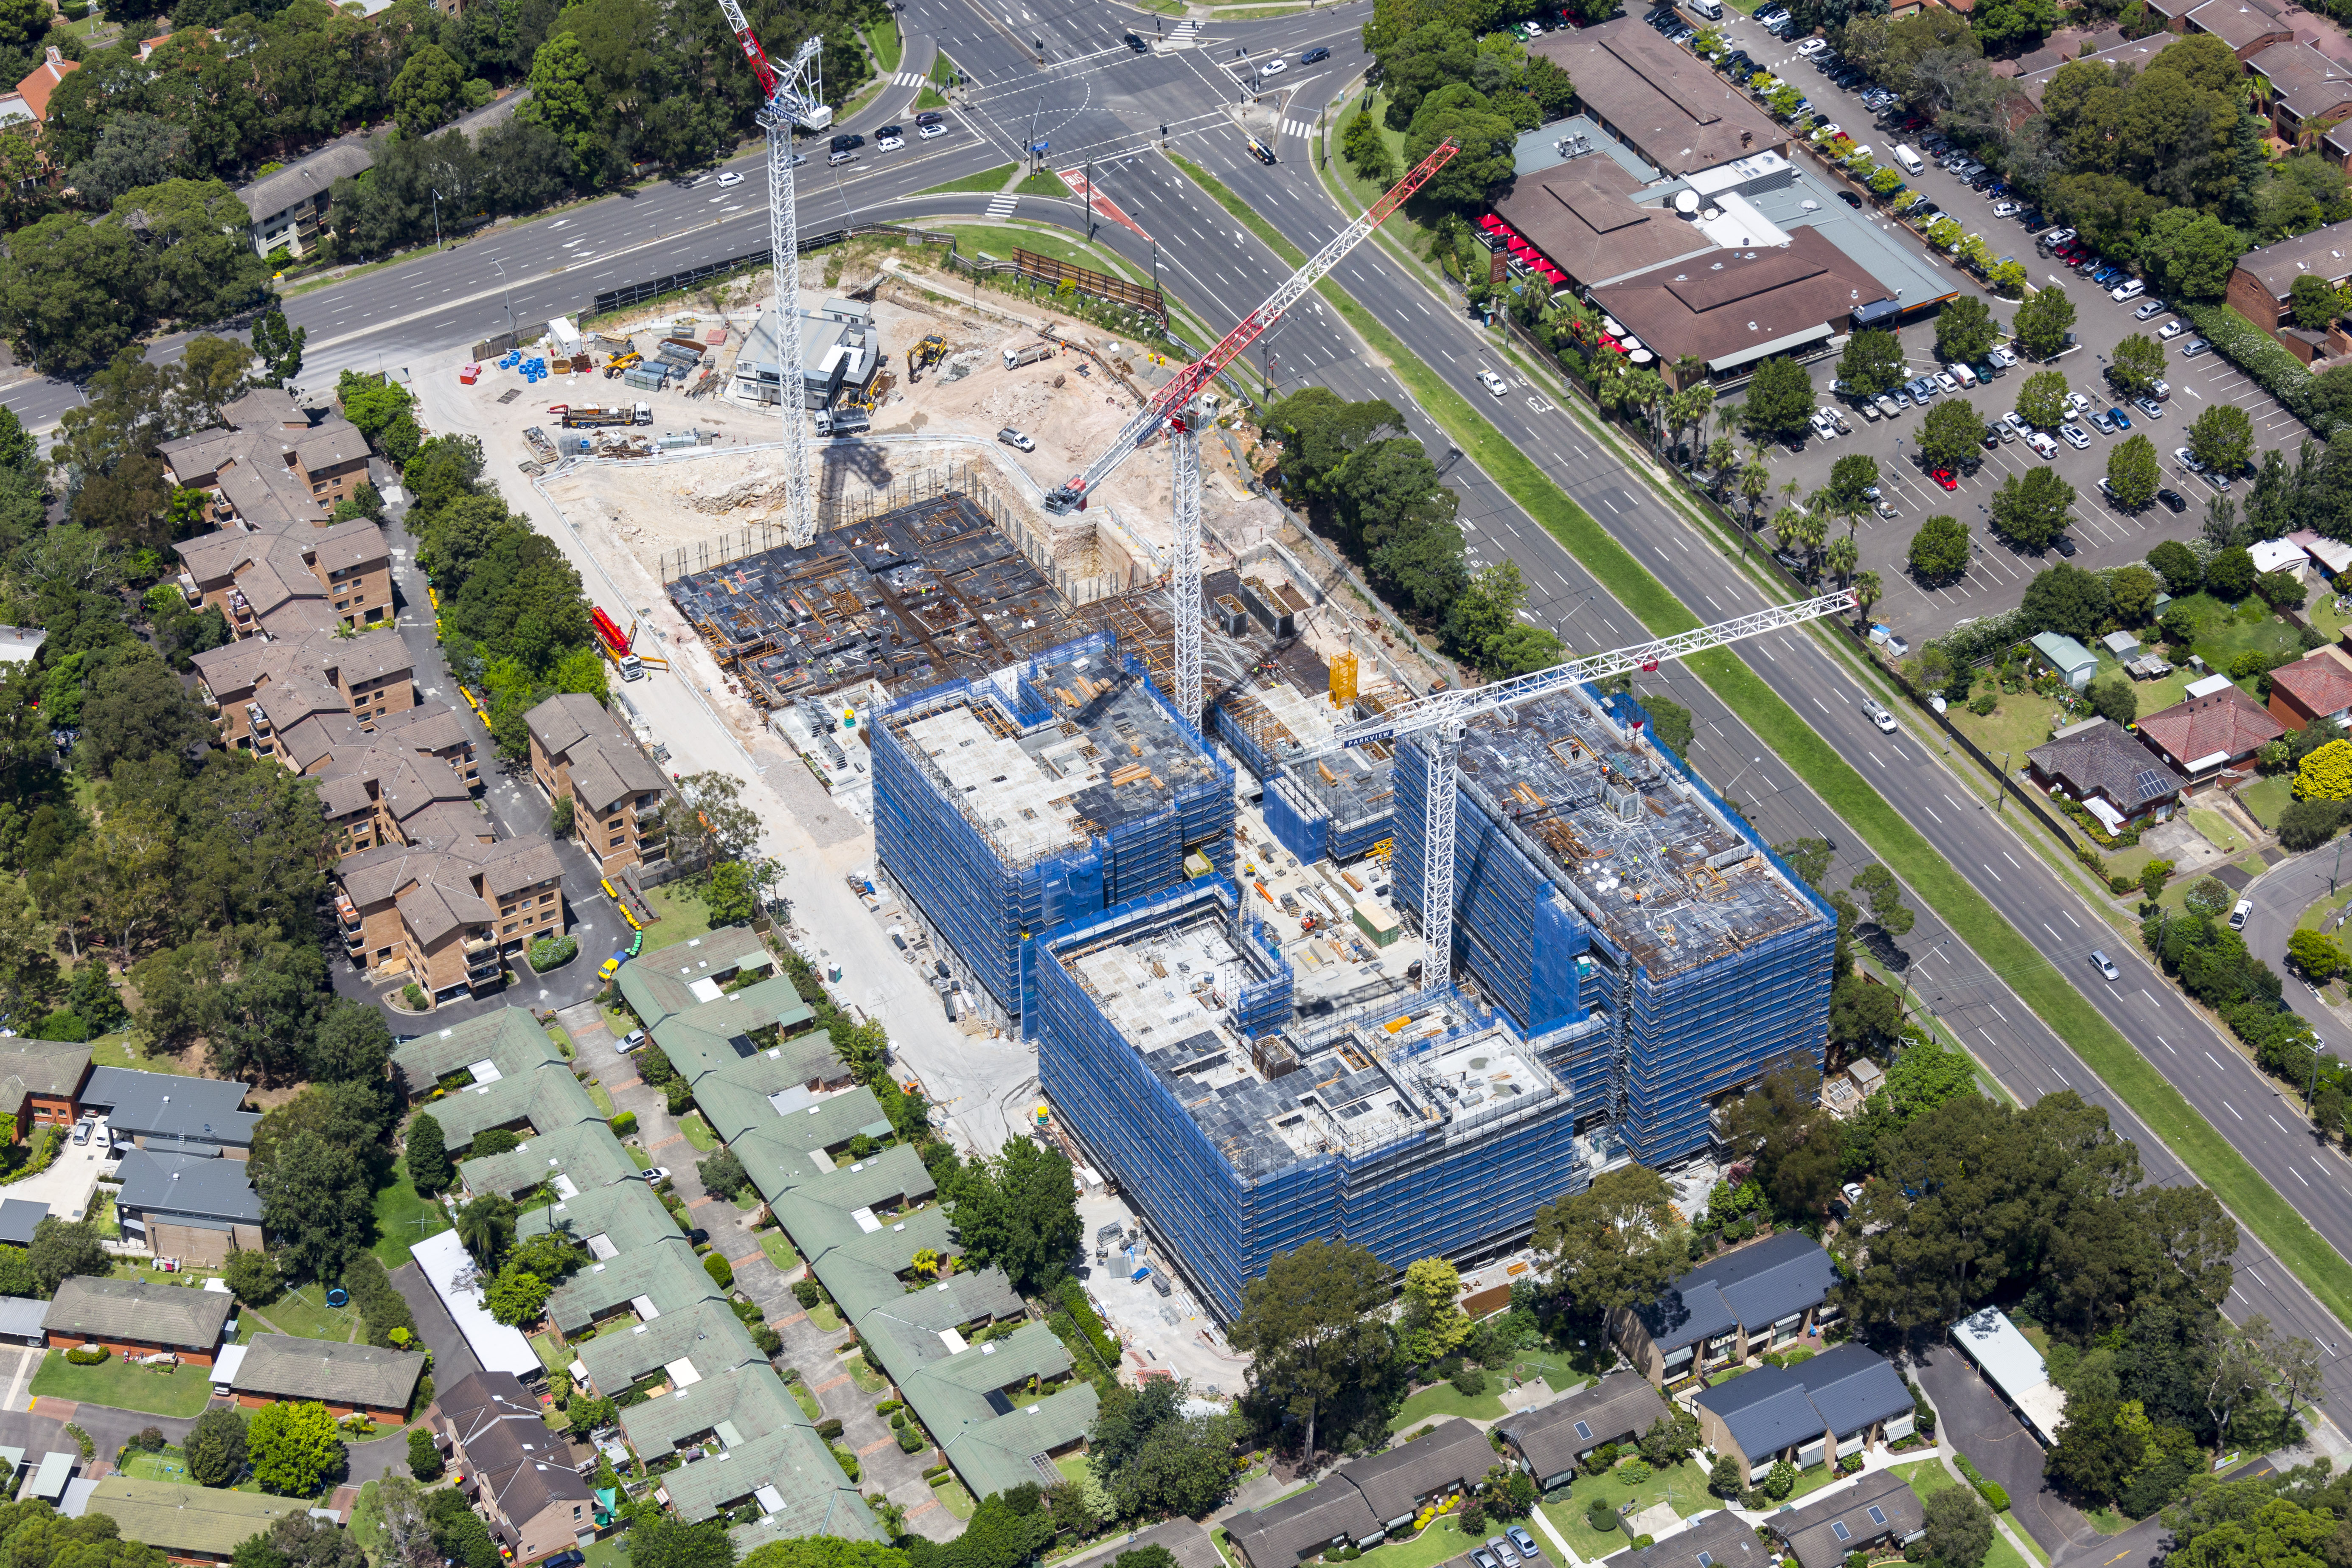 Oakstand macquarie park village commenced 2015 for Macquarie university swimming pool